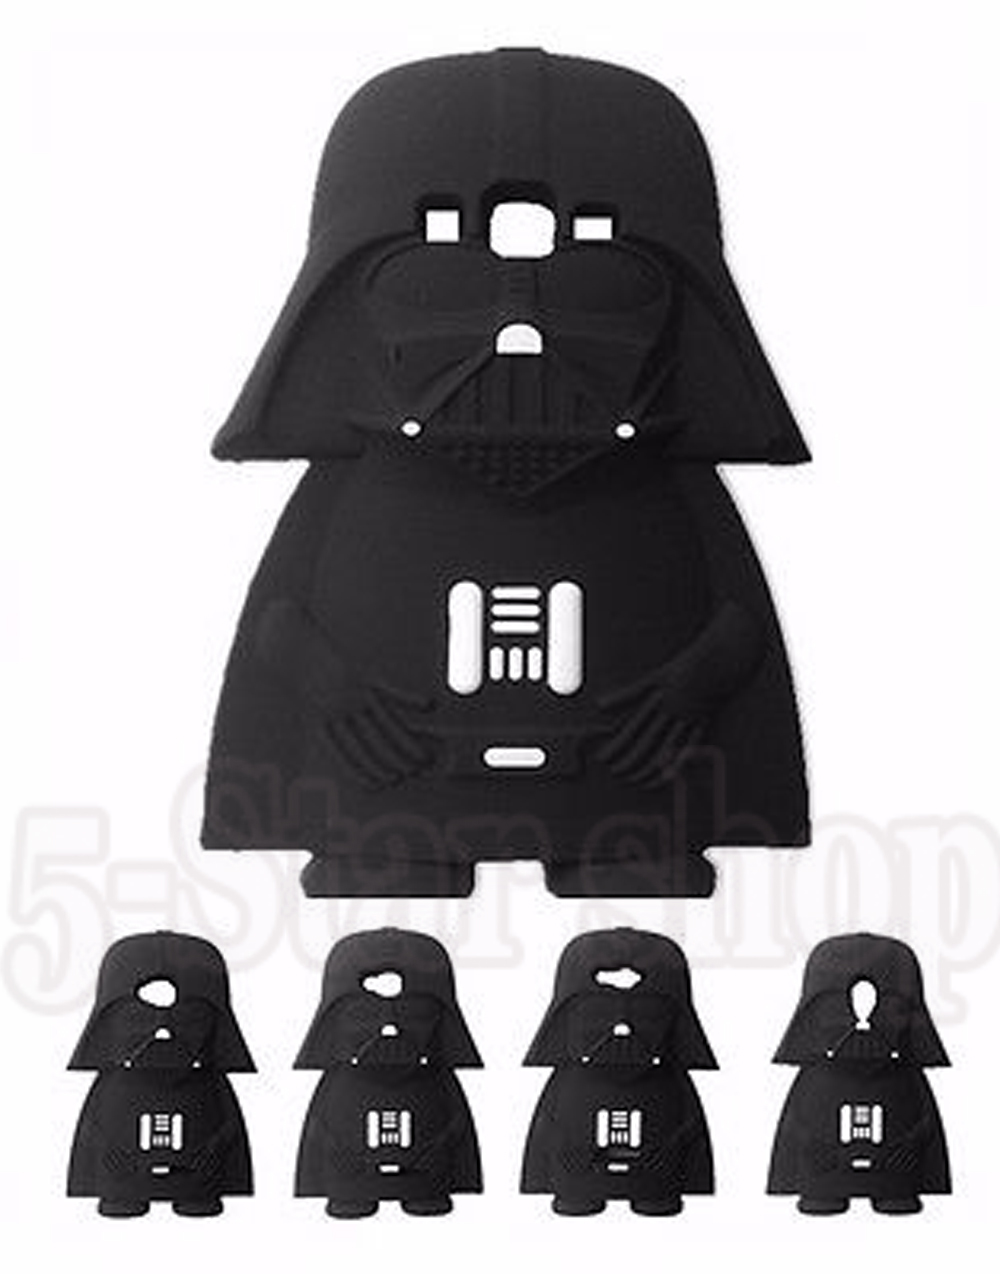 Star Wars 3D Darth Vader Gel Rubber Cover Case Samsung Galaxy Grand Core Prime Duos S4/S5/S6/S6 Edge/A5/A7/E5/E7/J1Ace/J5/J7  -  Factory store